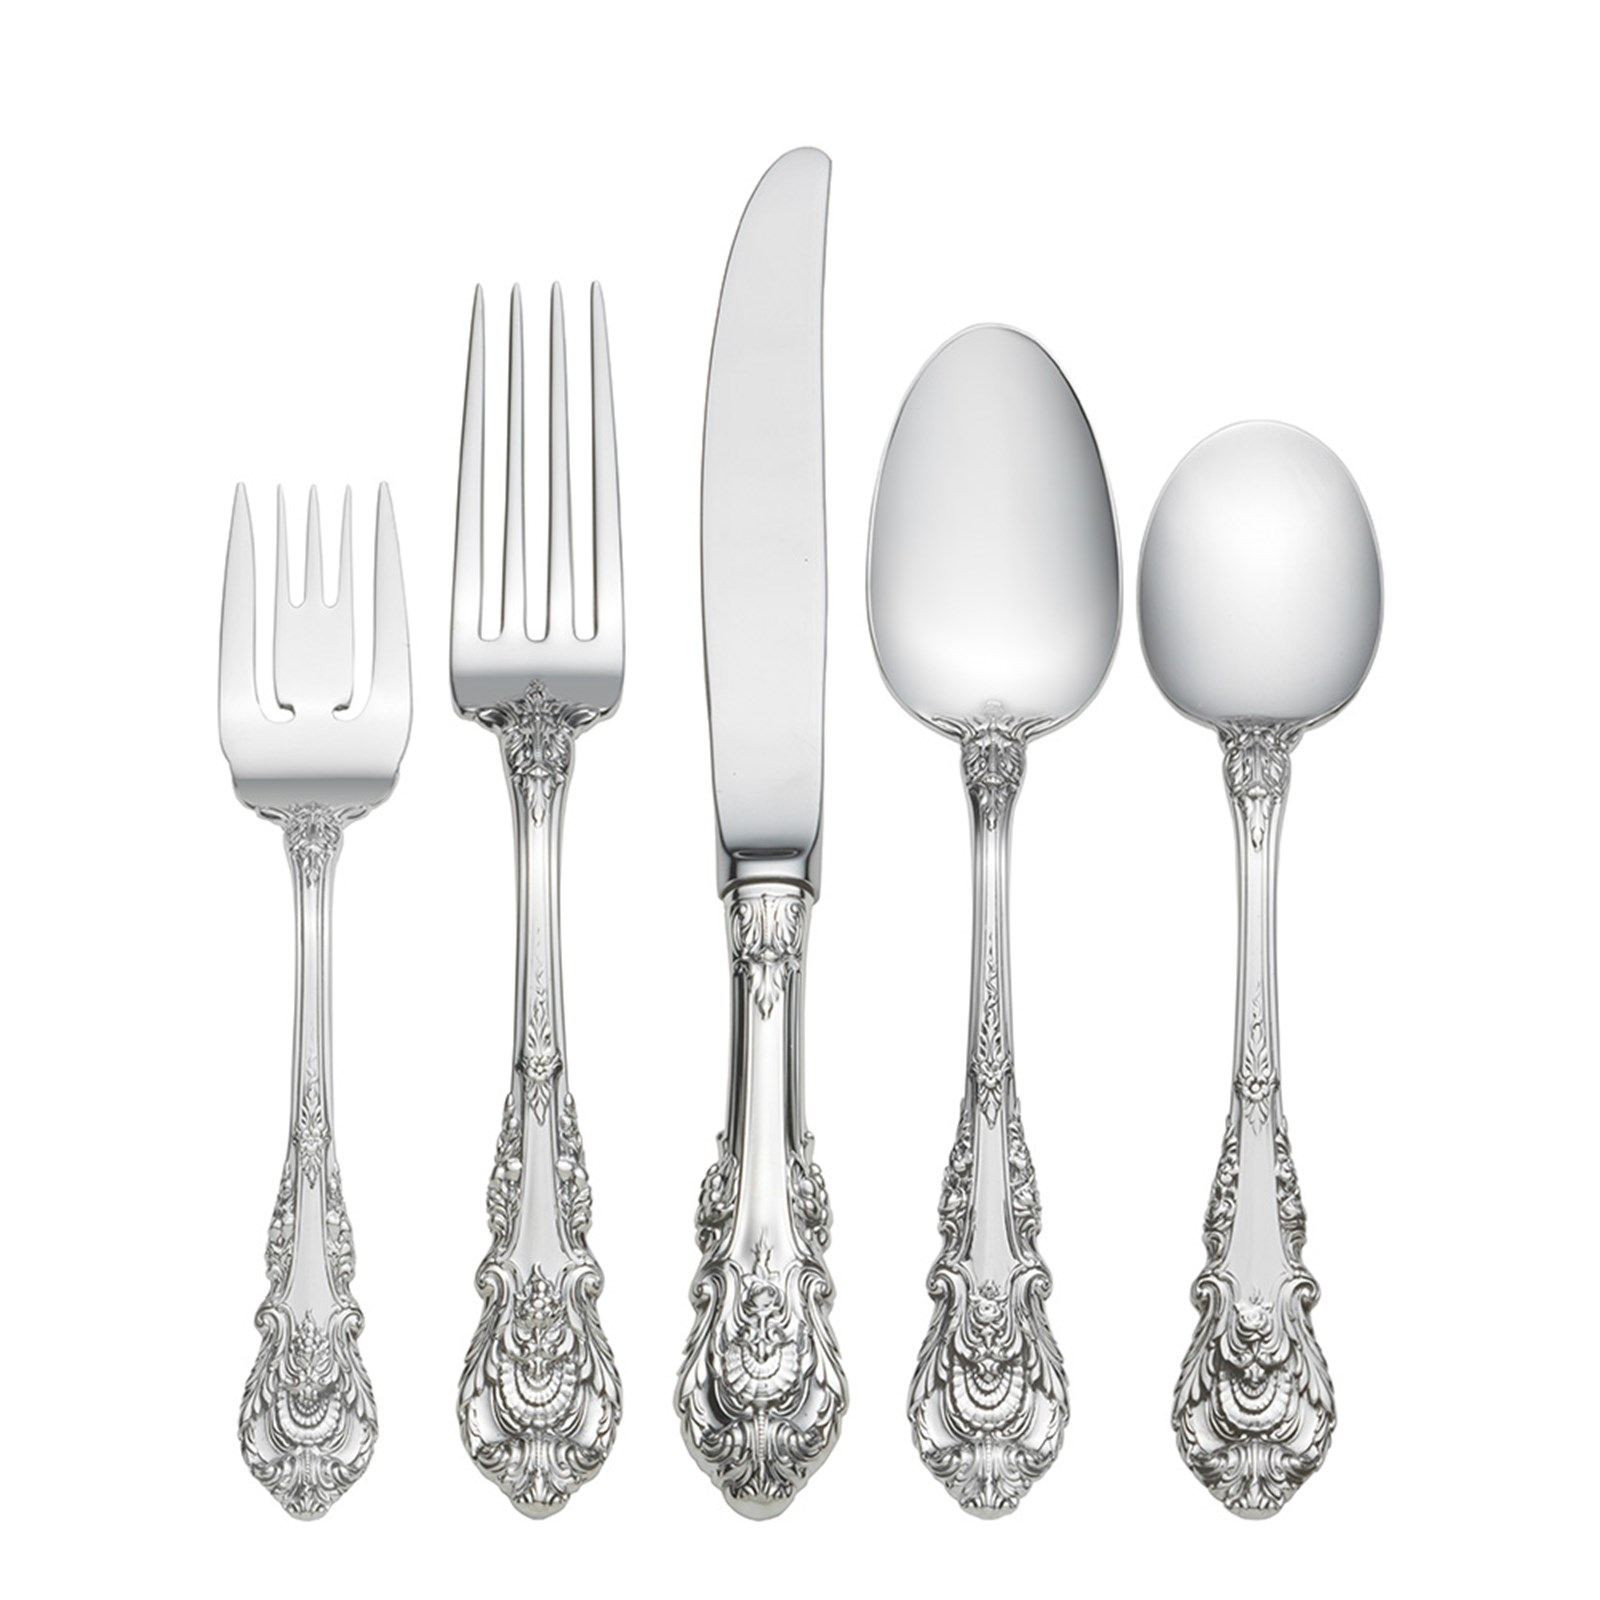 Sir Christopher by Wallace Sterling Silver Cream Soup Spoon